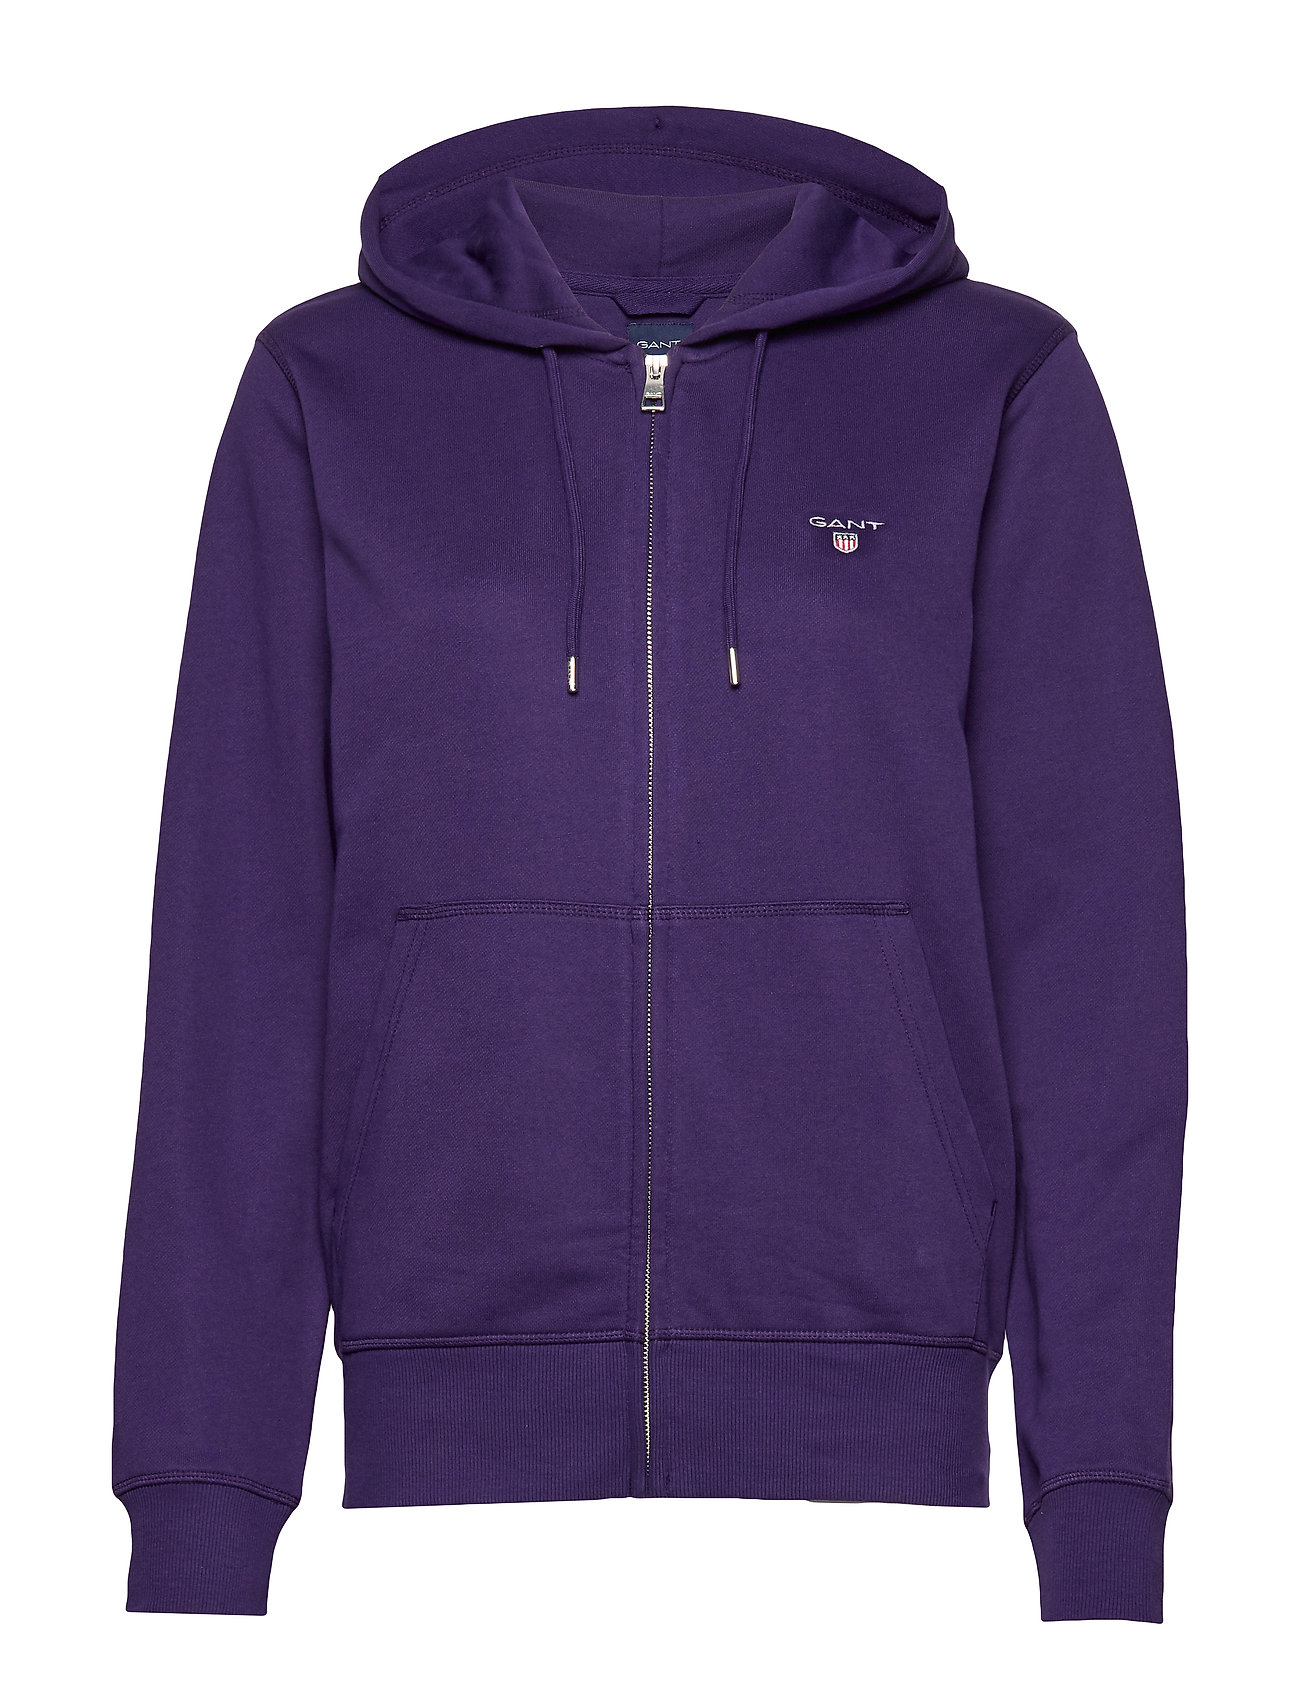 Gant THE ORIGINAL FULL ZIP HOODIE - PARACHUTE PURPLE